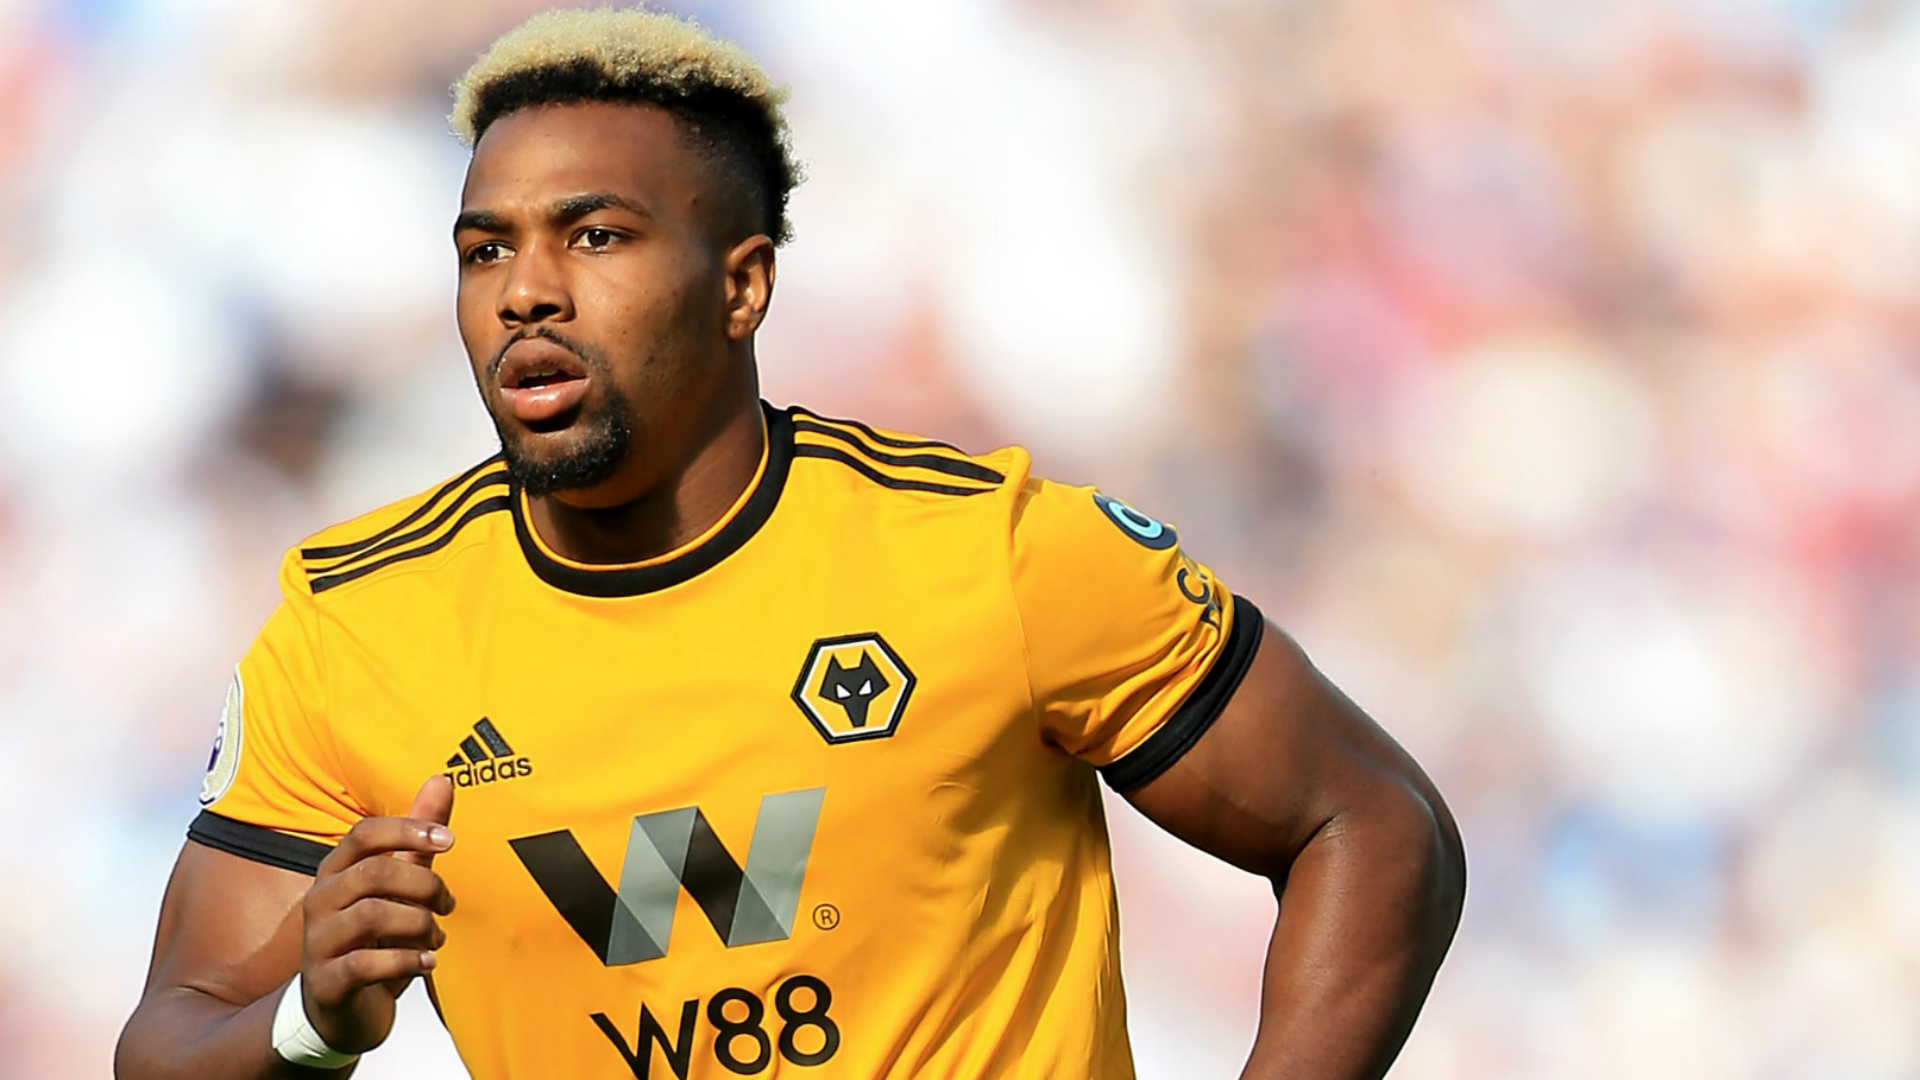 Adama Traore Is The Fastest Footballer In The World Christie Afroballers